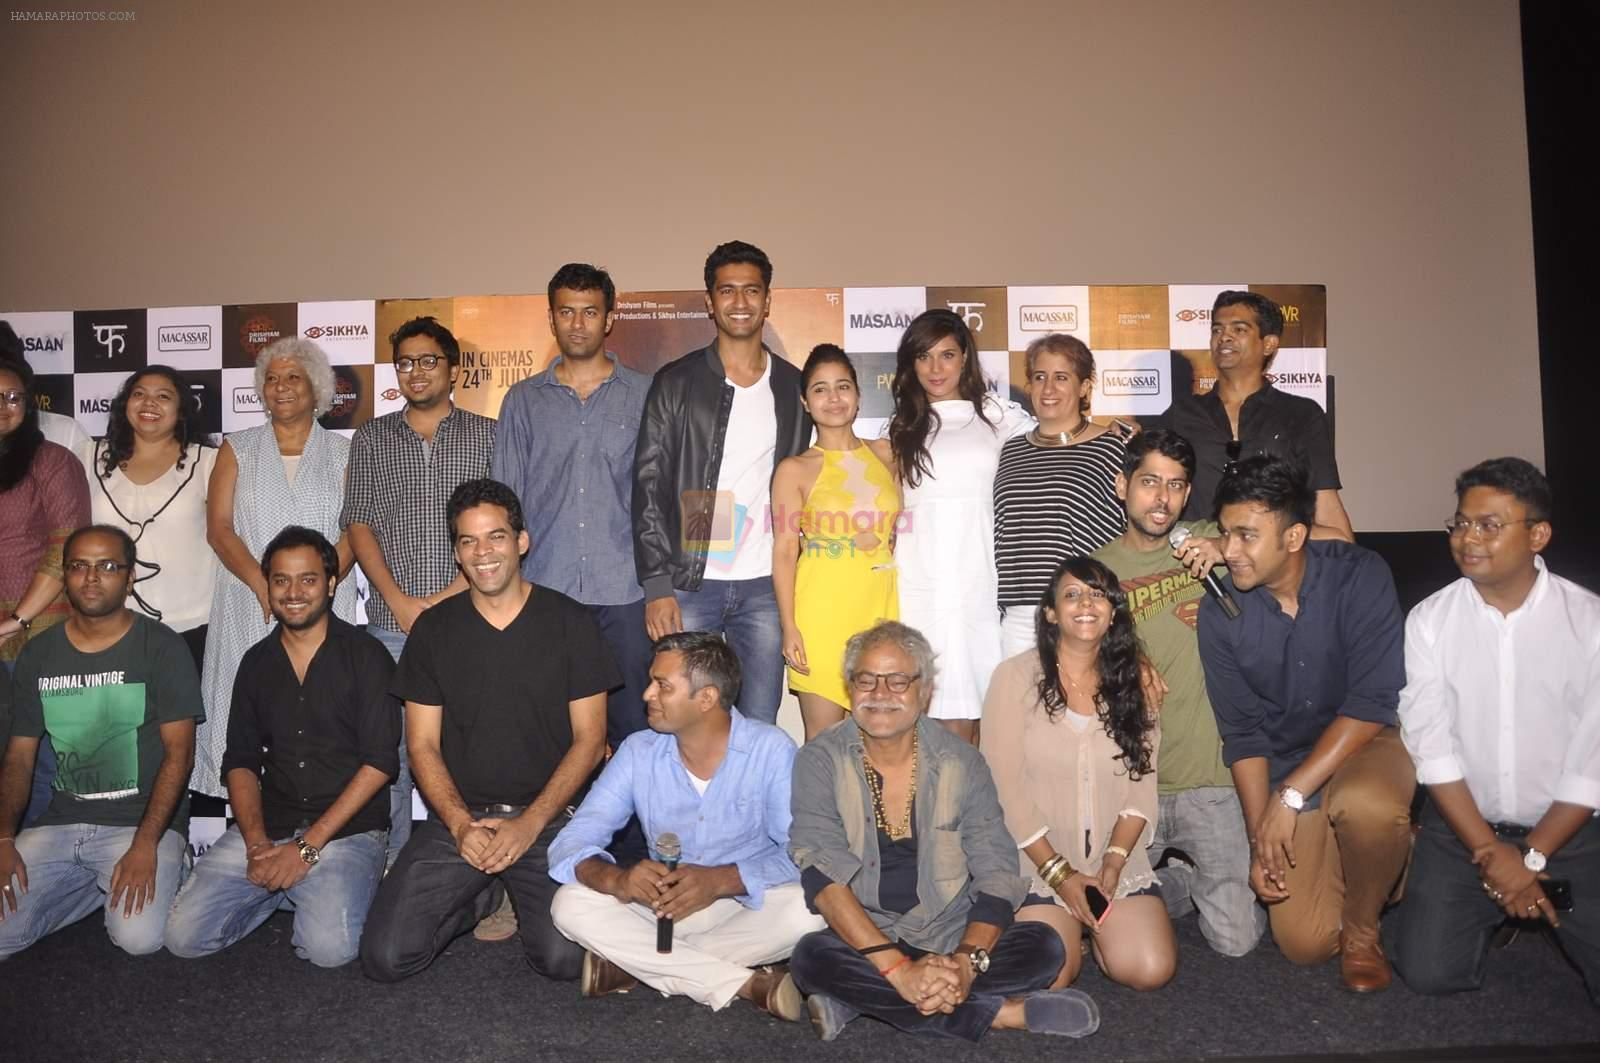 Richa Chadda, Sanjay Mishra,  Neeraj Ghaywan, Vicky Kaushal, Shweta Tripathi, Vikas Bahl, Vikramaditya Motwane at Masan trilor launch in Mumbai on 26th June 2015